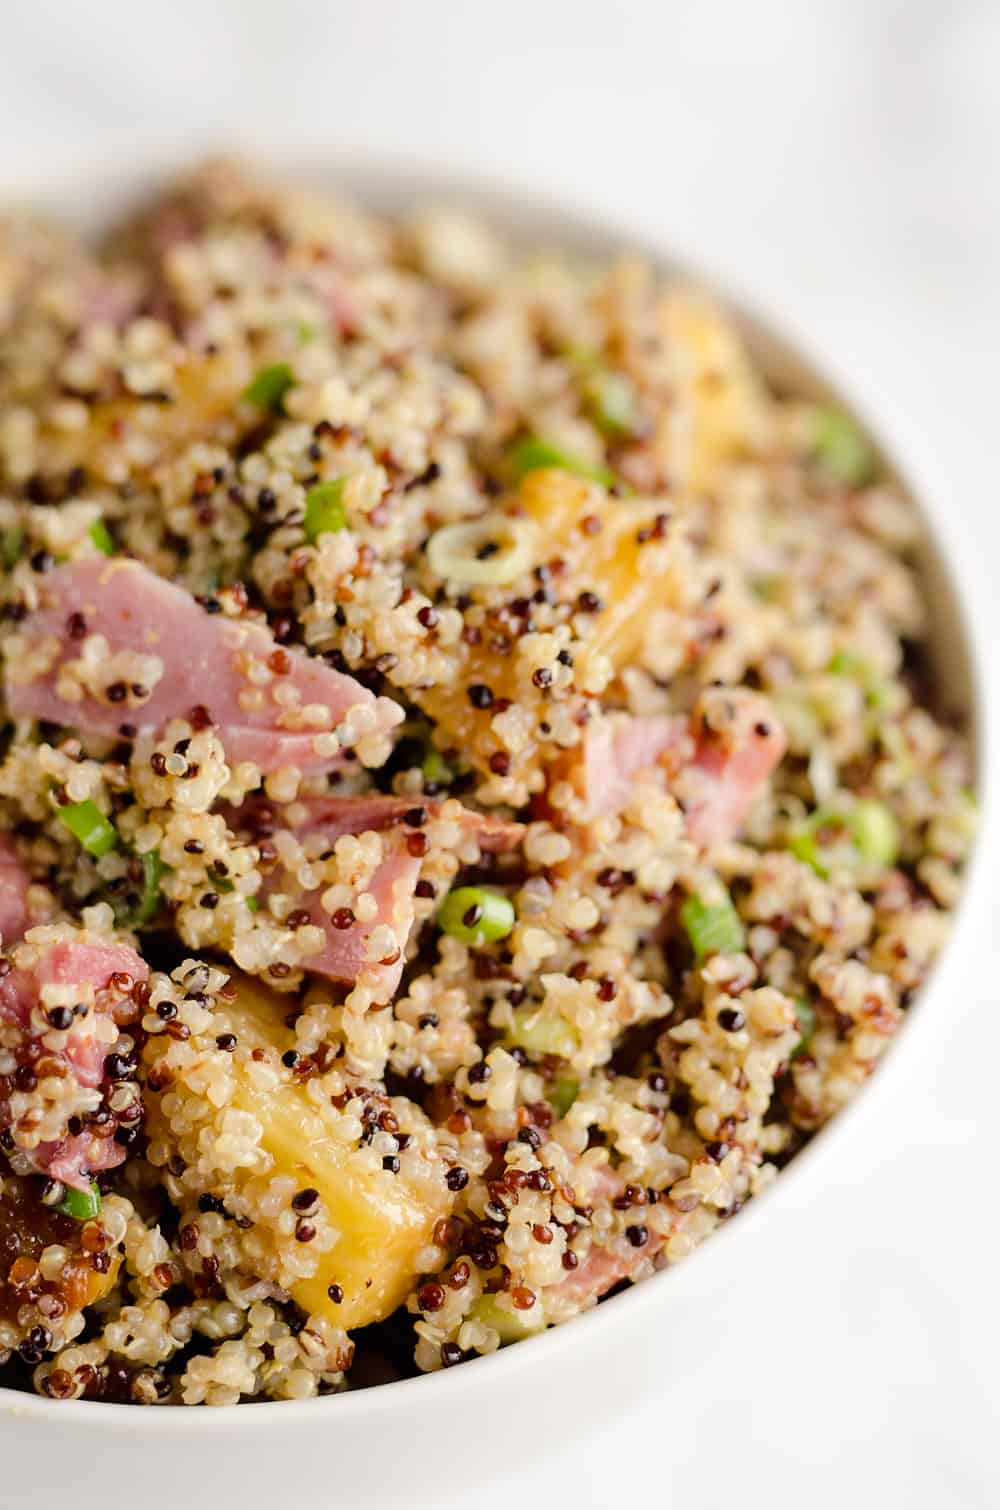 Roasted Pineapple & Ham Quinoa Salad is an easy recipe using up leftover ham with the perfect combination of sweet, salty and smokey flavors. Crunchy quinoa and oven roasted pineapple and ham are tossed with a Light Honey Dijon Vinaigrette for an easy 5 ingredient salad.